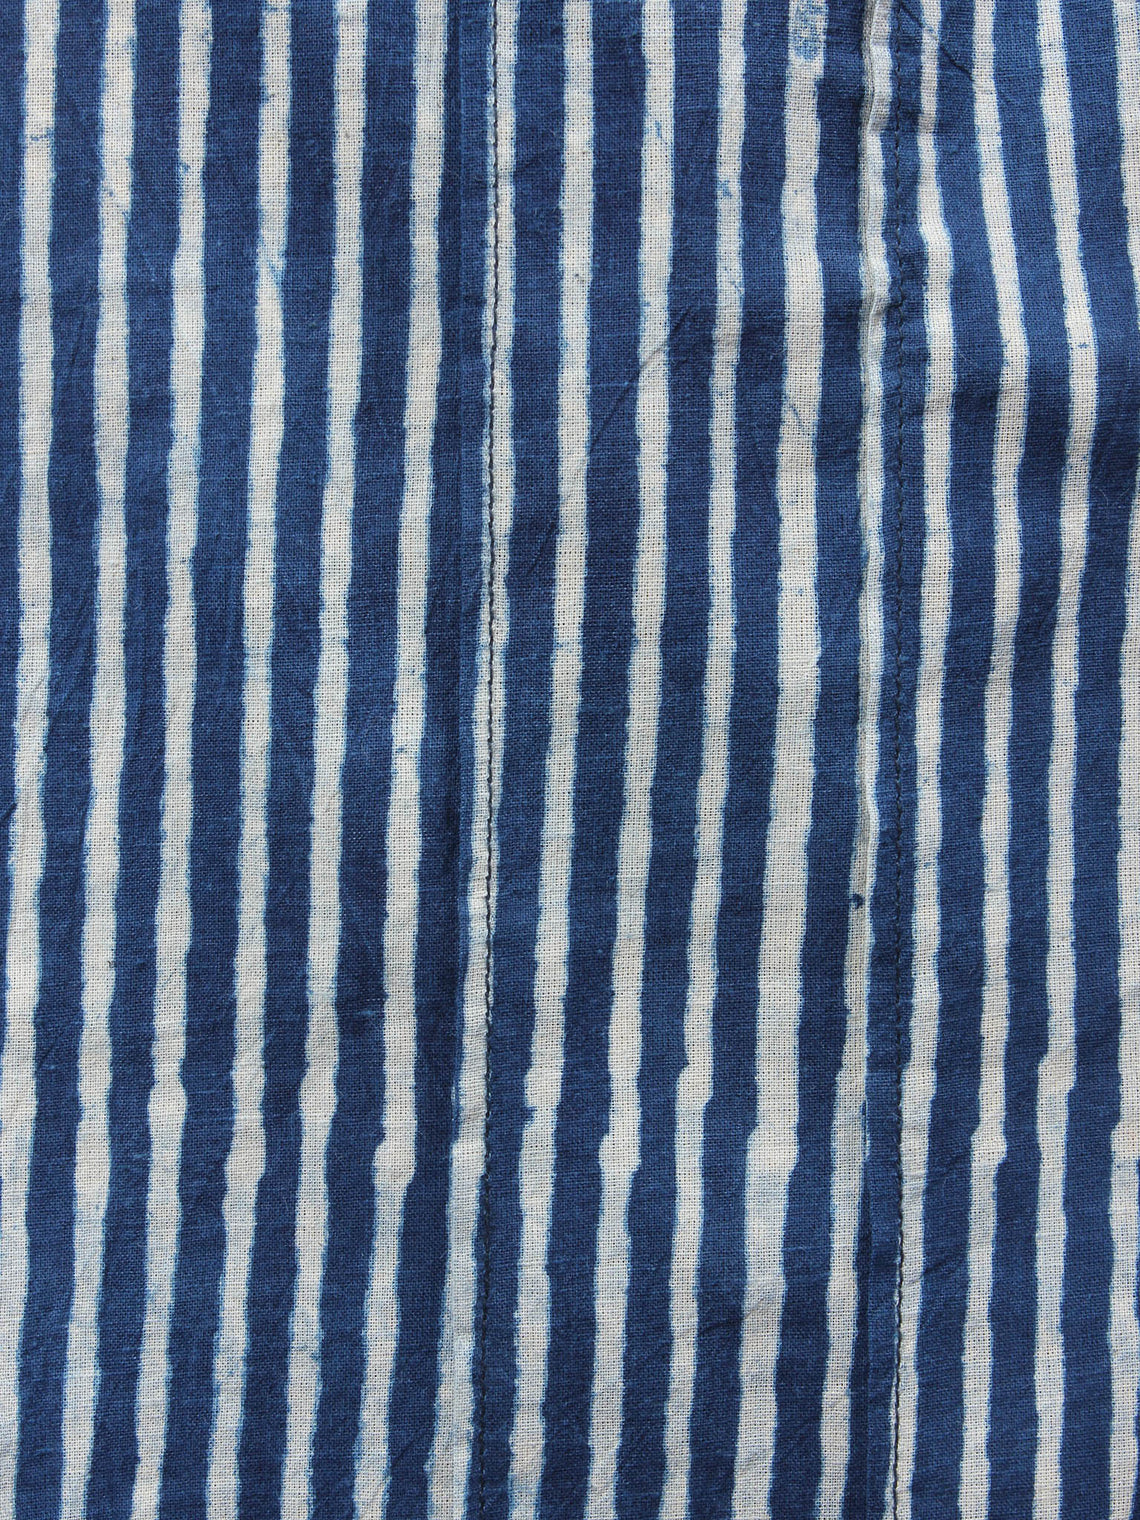 Indigo Hand Block Printed Elasticated Waist Pleated Cotton Palazzo - P1117055